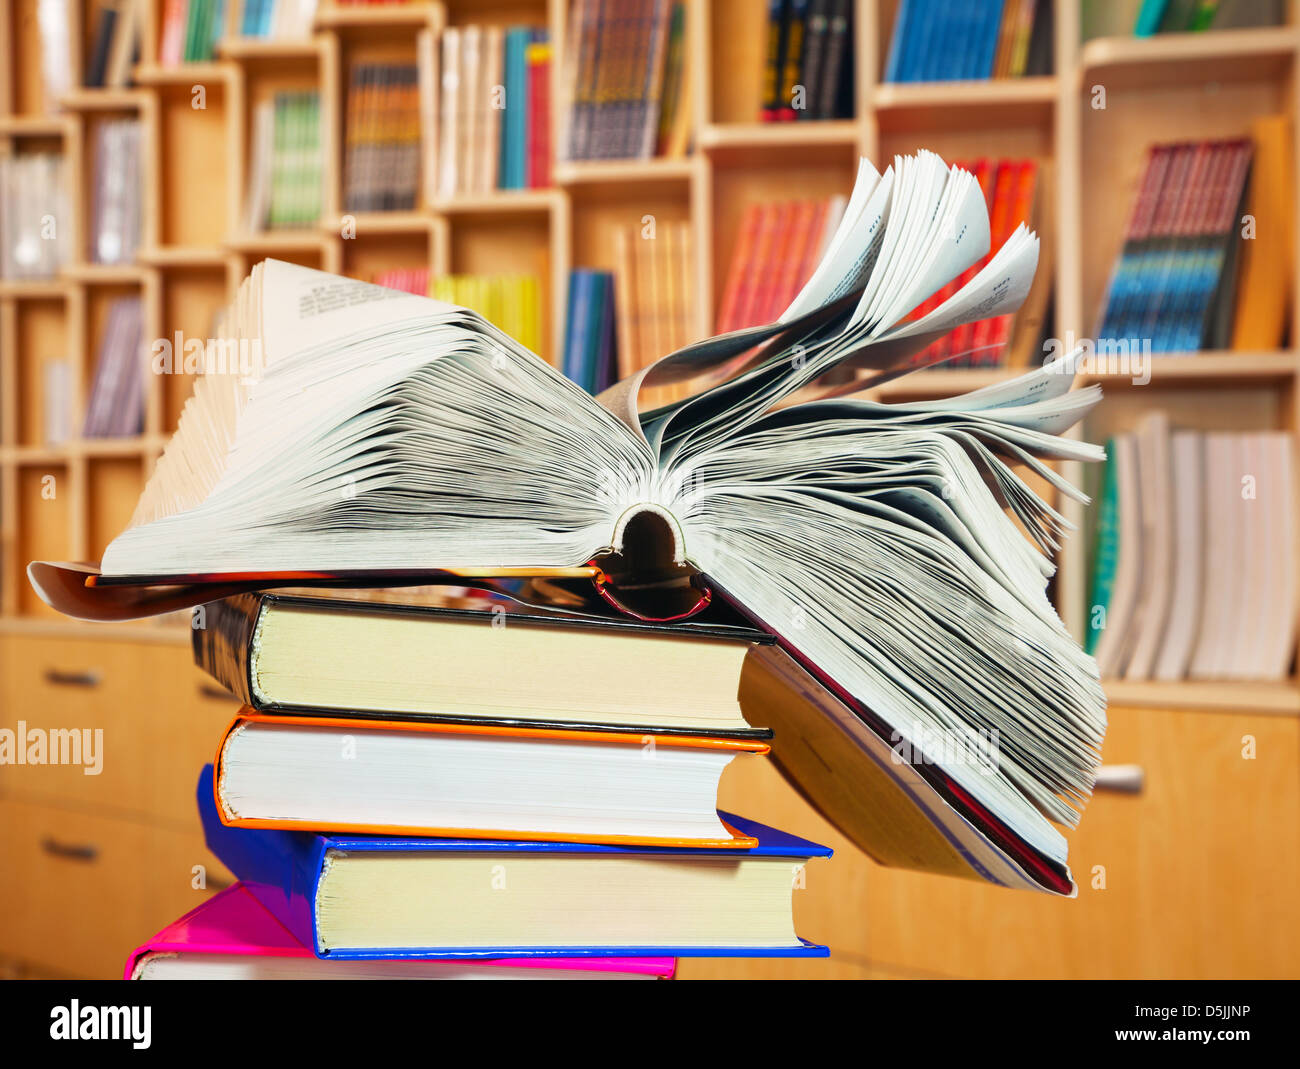 Open book lying on a stack of books - Stock Image